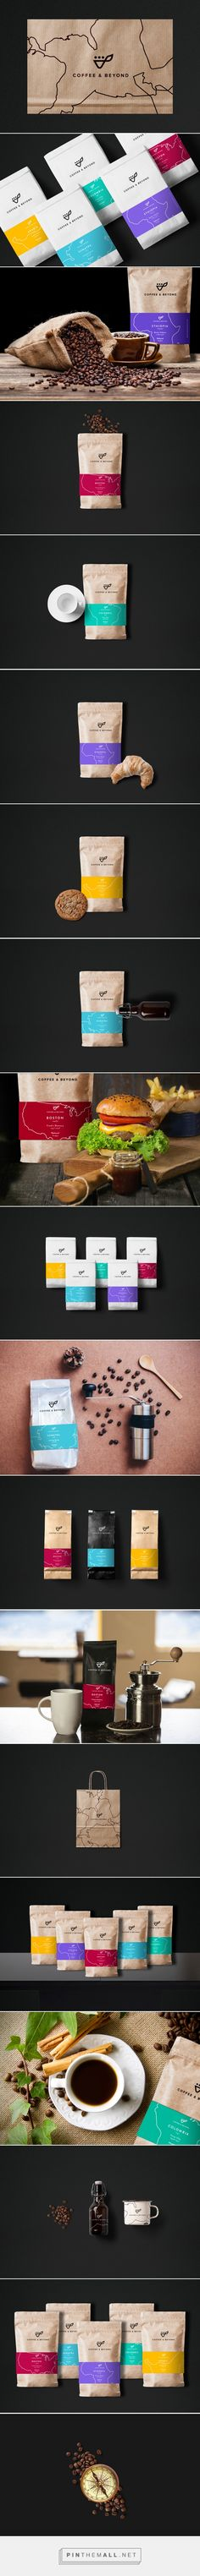 Coffee & Beyond packaging on Behance... - a grouped images picture - Pin Them All